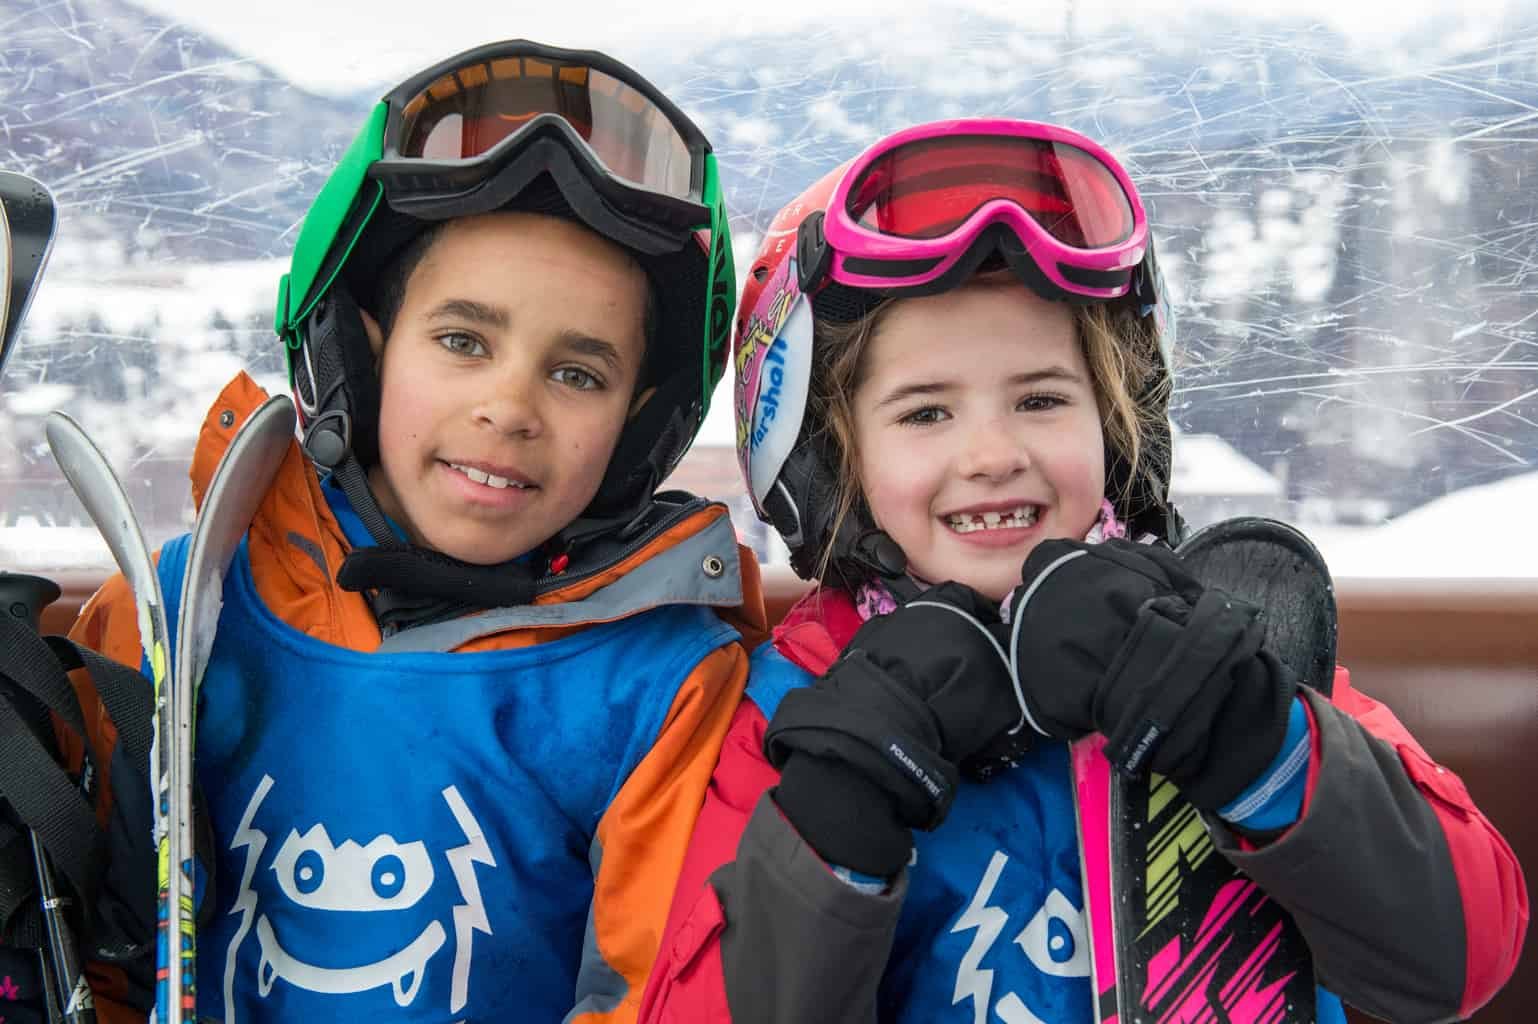 Two children sitting in a ski lift with their goggles off